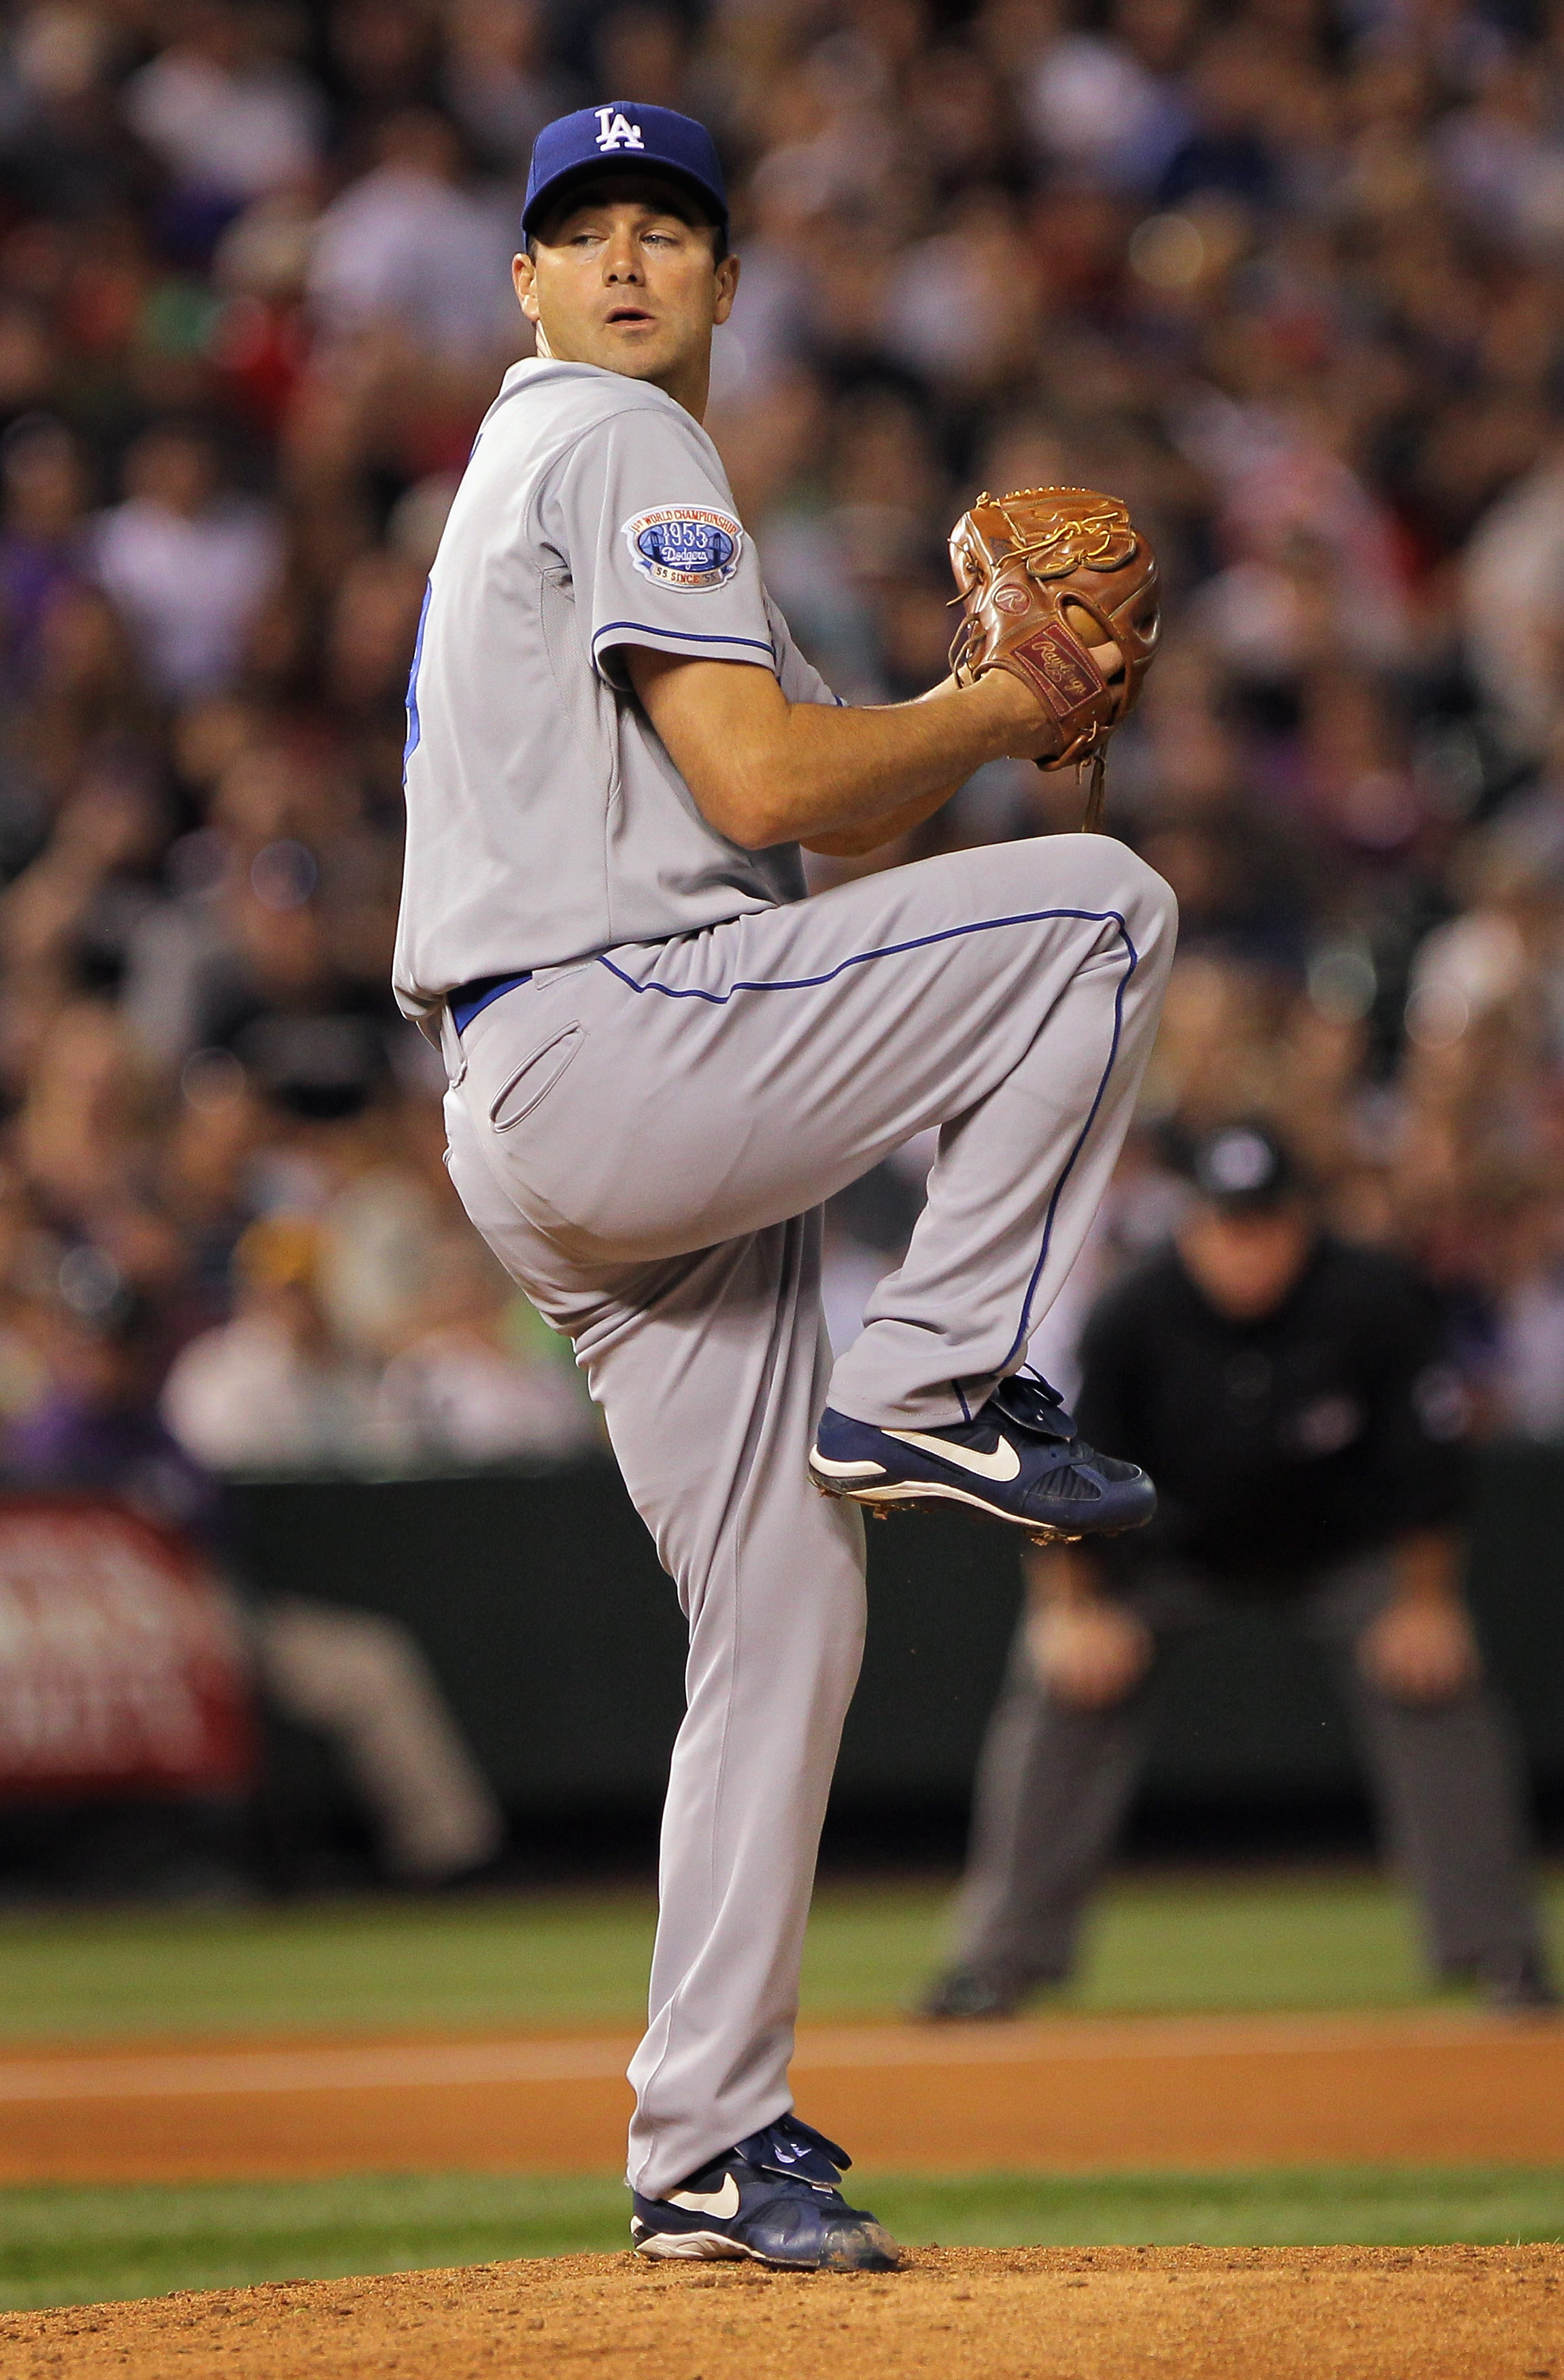 DENVER - SEPTEMBER 27:  Starting pitcher Ted Lilly #29 of the Los Angeles Dodgers delivers against the Colorado Rockies at Coors Field on September 25, 2010 in Denver, Colorado. Lilly earned the win as the Dodgers defeated the Rockies 3-1.  (Photo by Doug